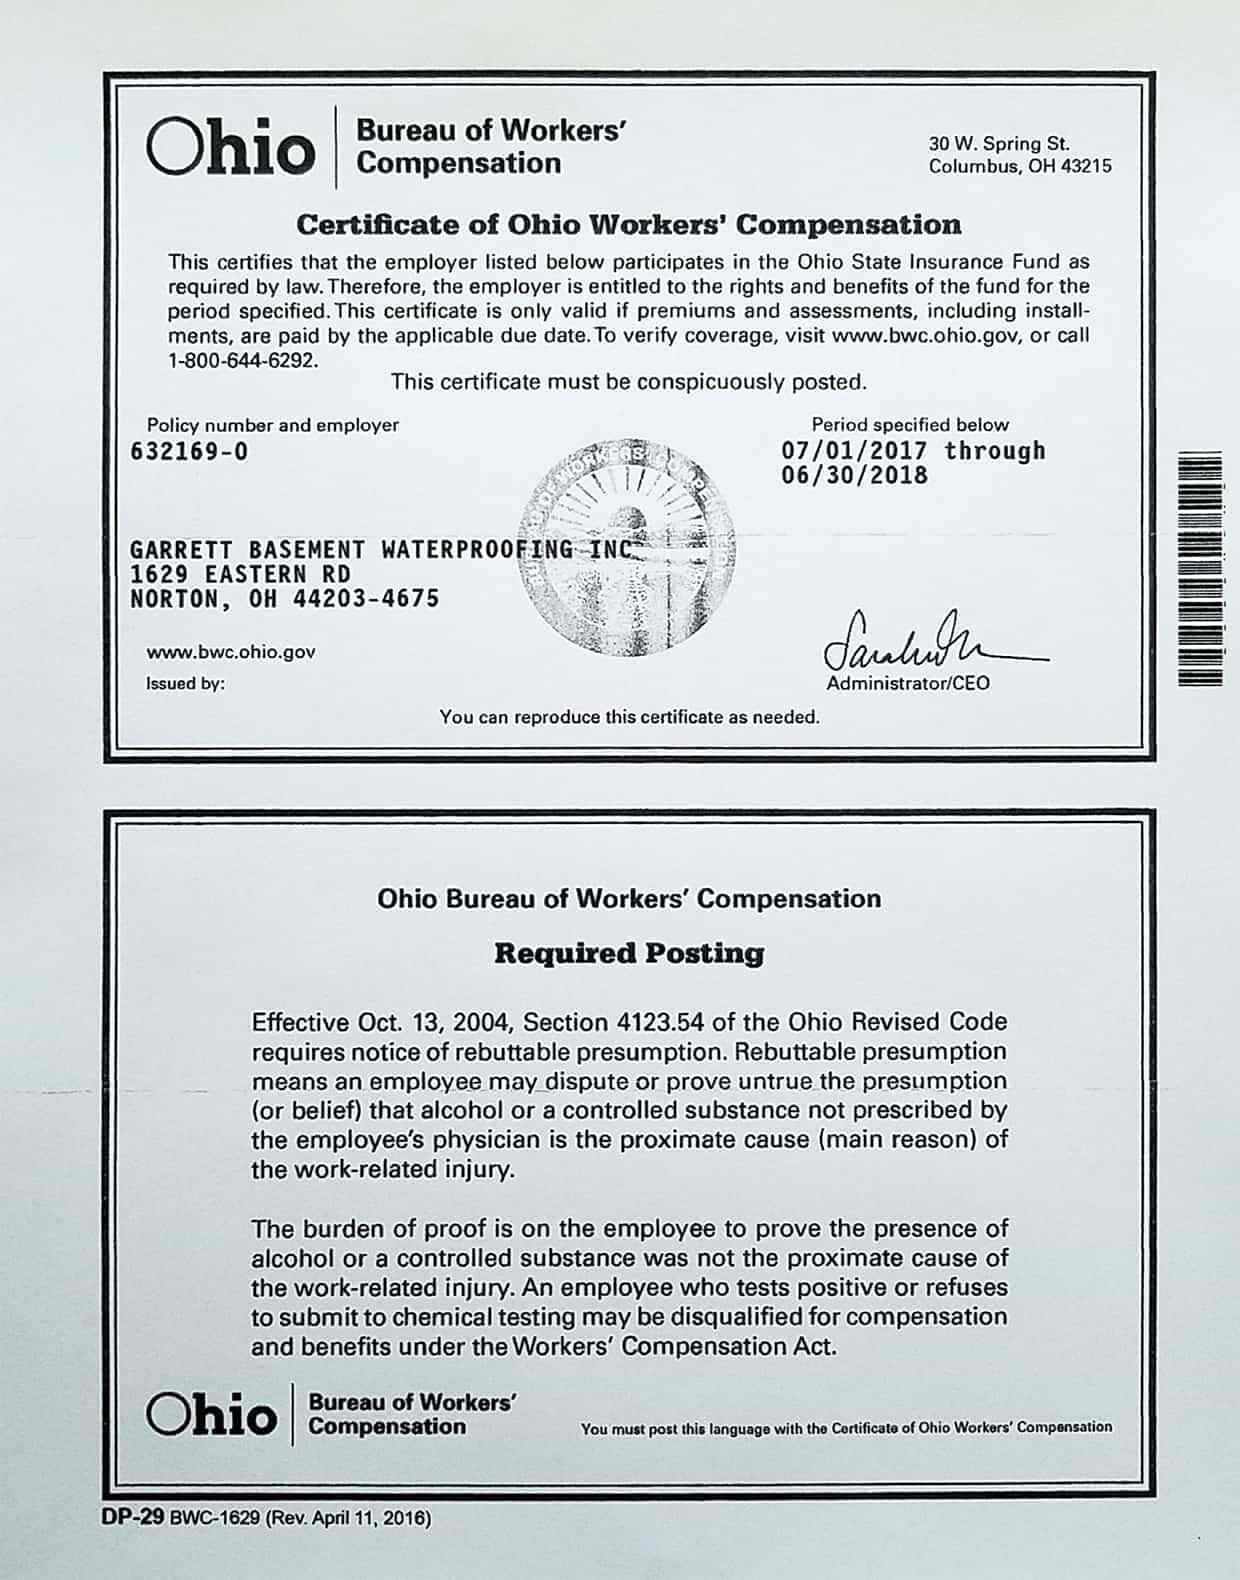 Certificate for Ohio Workers' Compensation